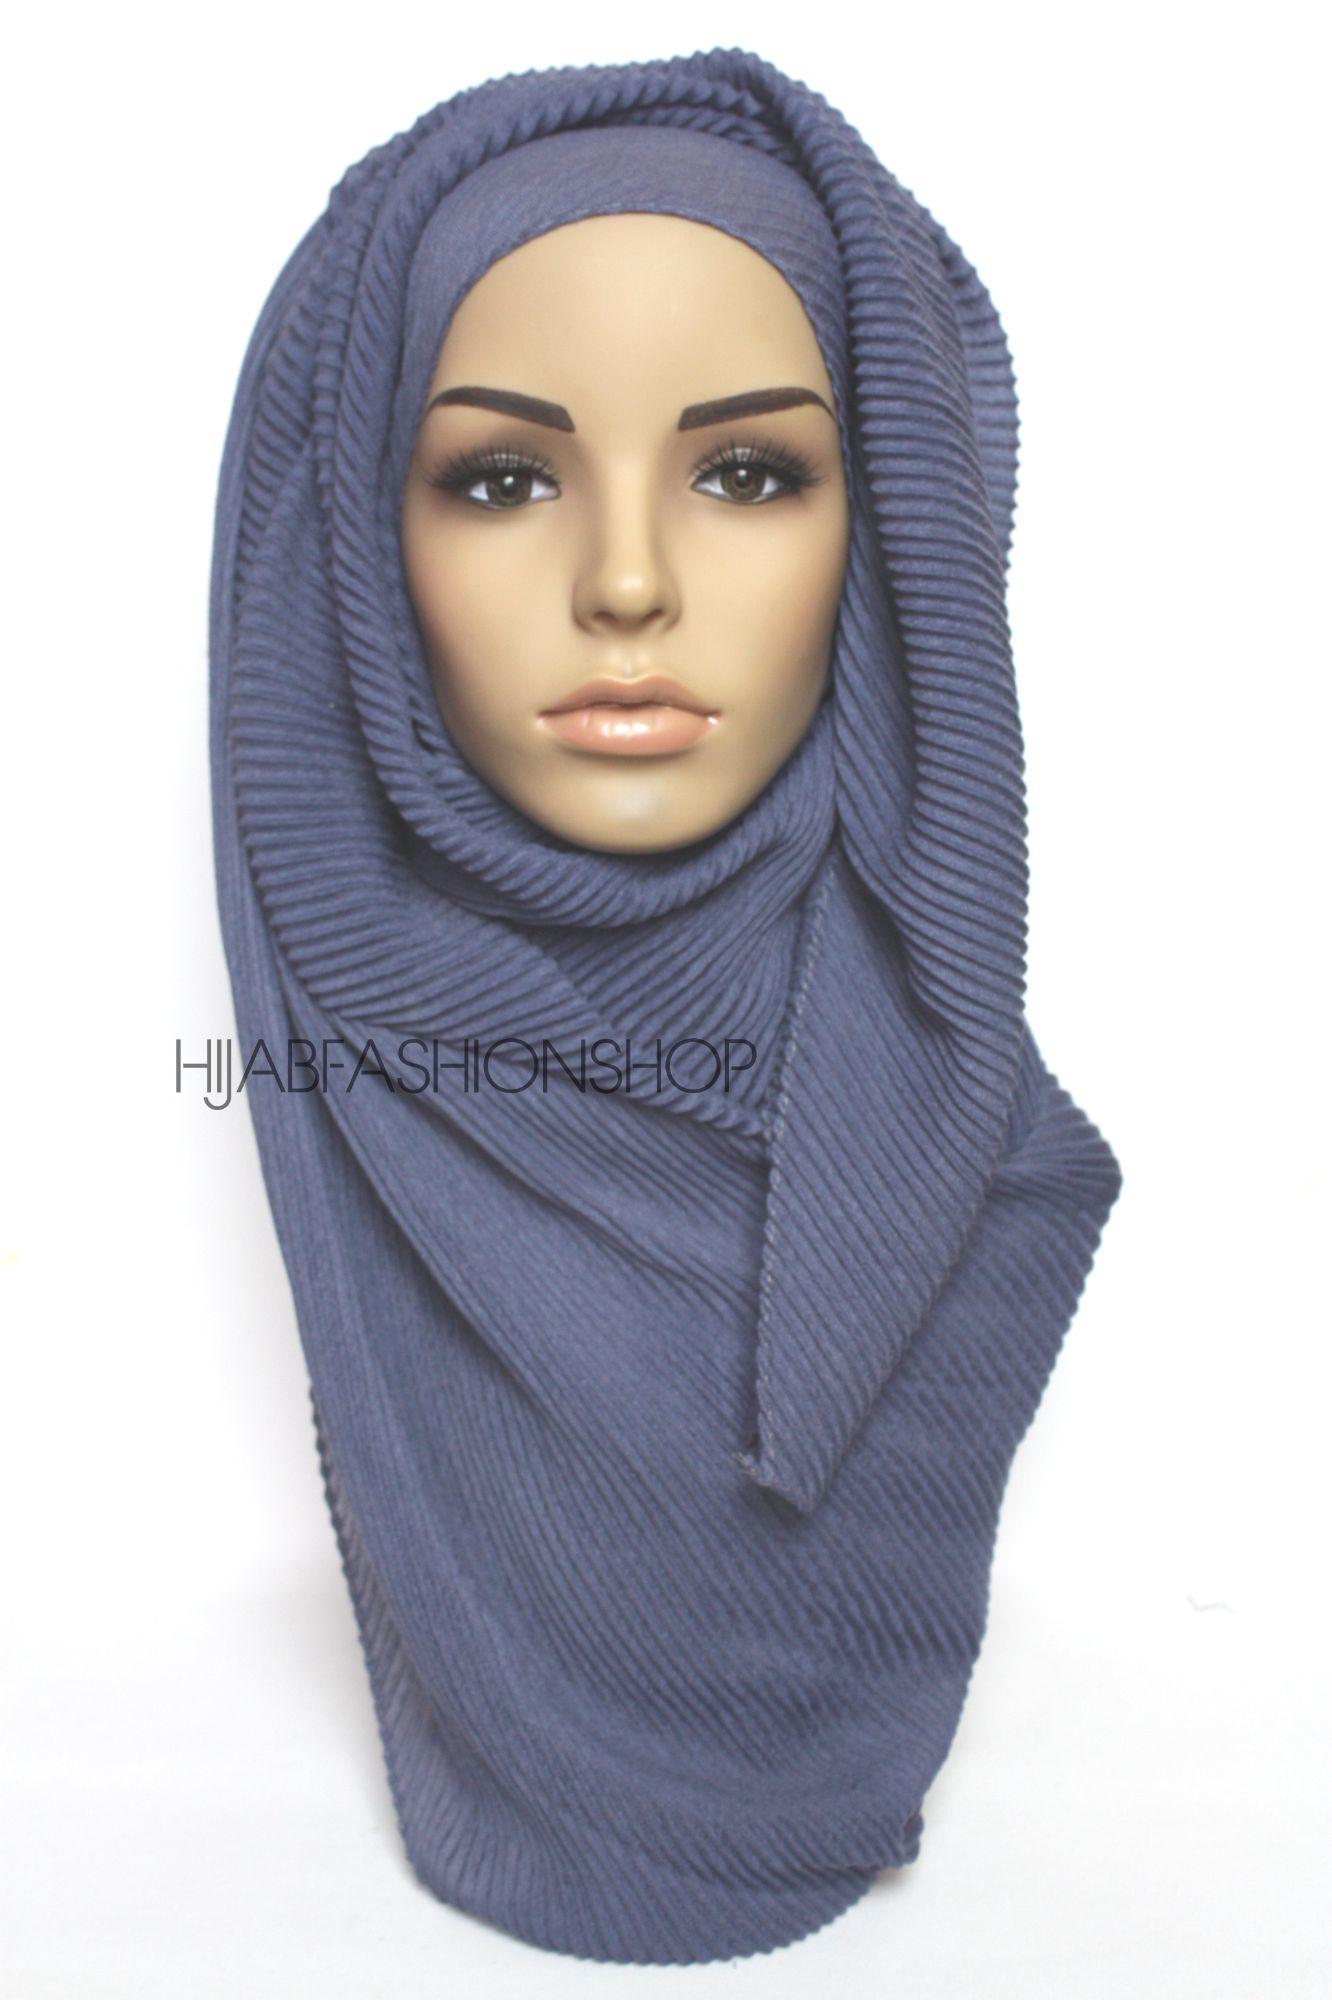 denim pleated hijab